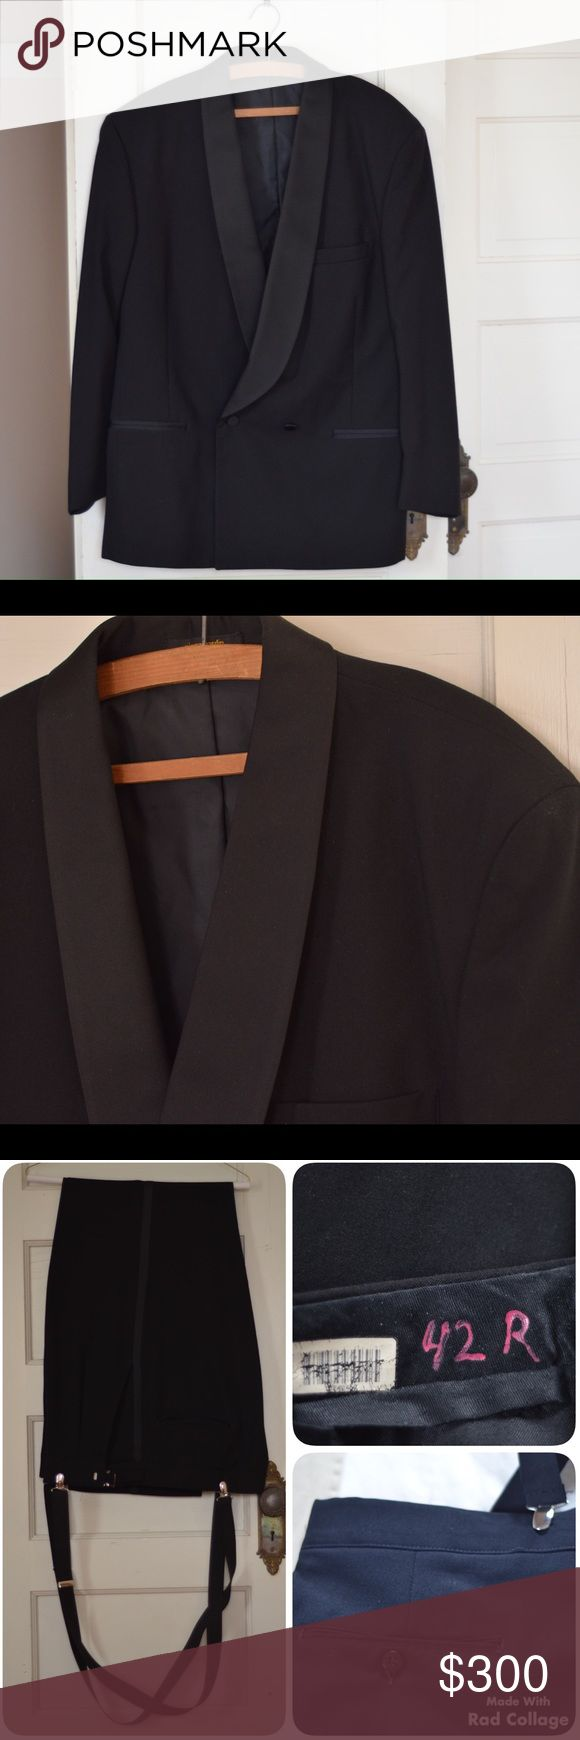 """Pierre Cardin Tuxedo Pierre Cardin Tuxedo, size 42R. From a smoke free home. Pants: 42"""" waist, 32"""" inseam. Jacket: 20"""" across shoulder, 25"""" sleeve length, 23"""" across chest laying flat. Pierre Cardin Suits & Blazers Tuxedos"""